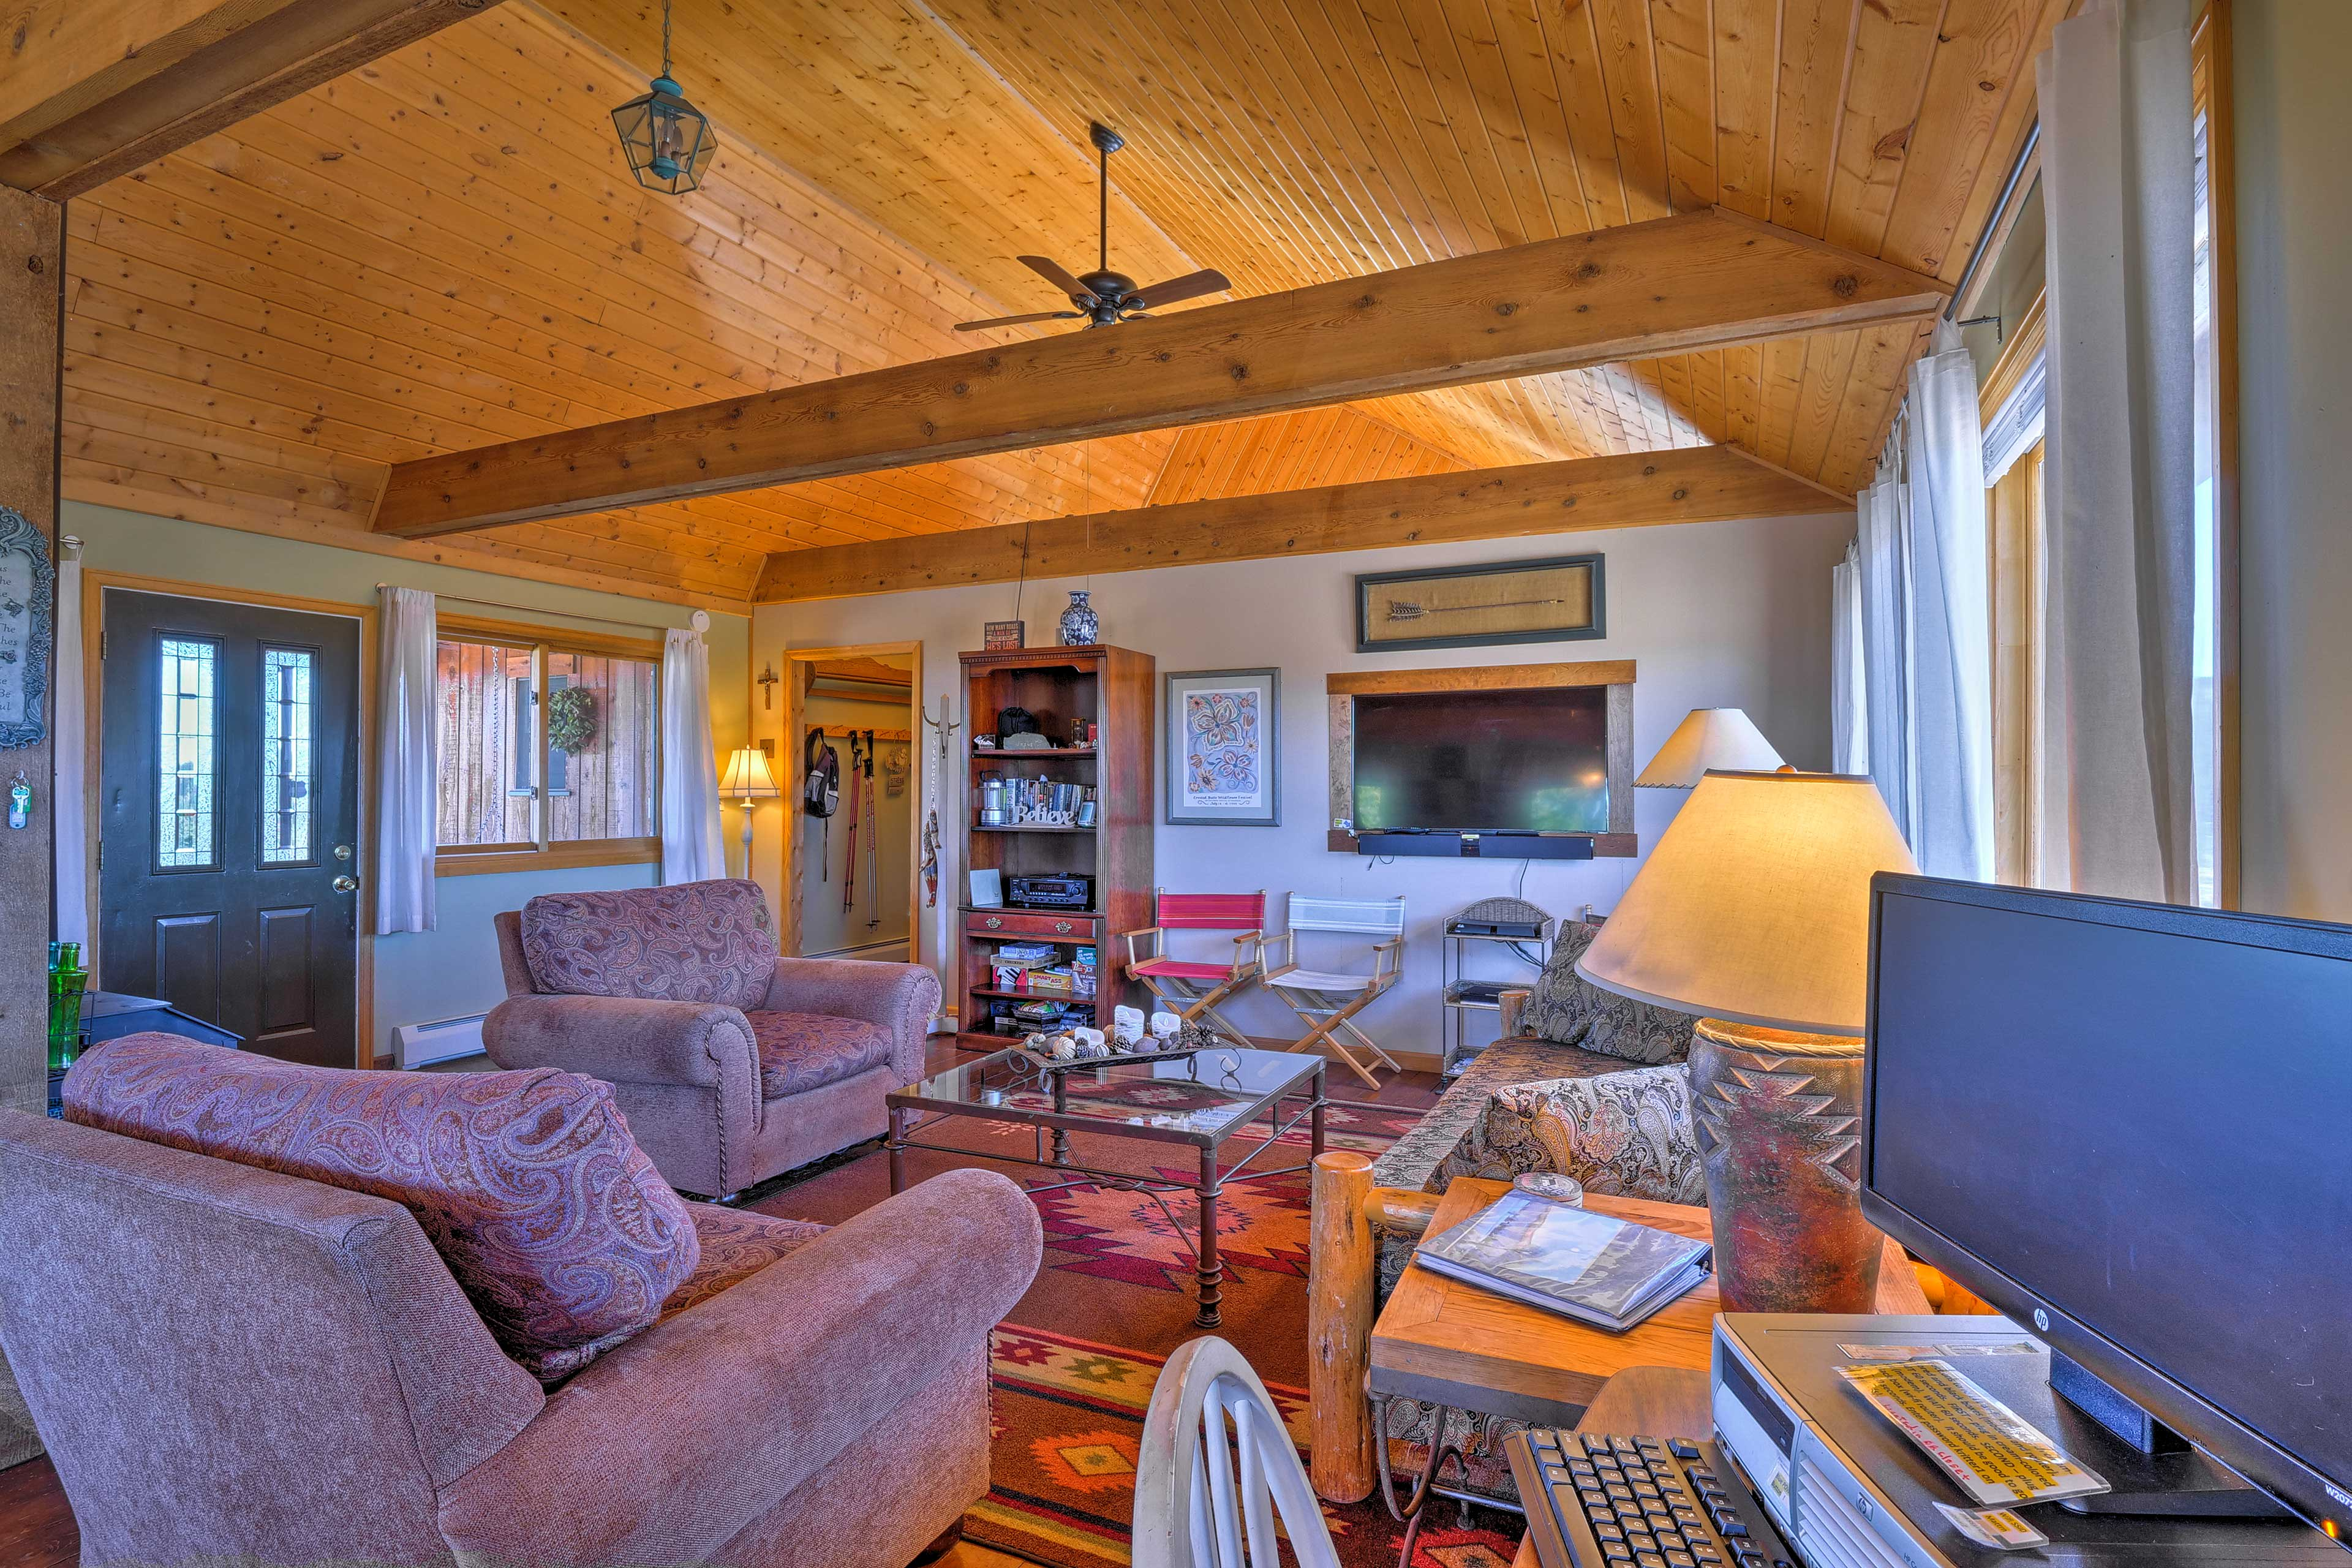 A slanted wood paneled tongue & grooved ceiling adds rustic character.